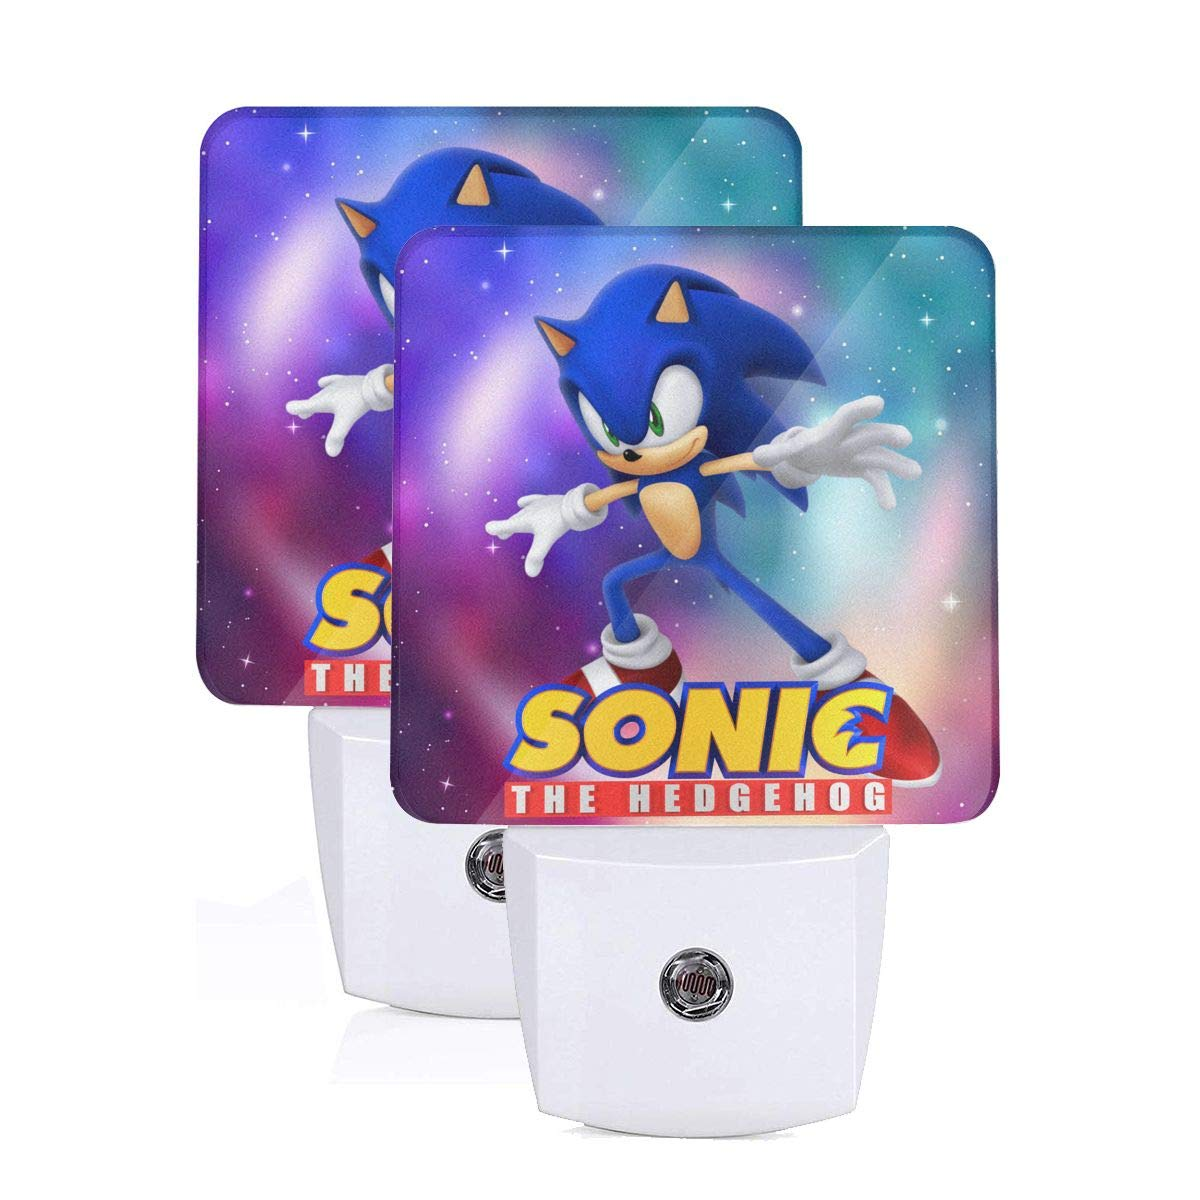 Plug in LED Night Light Set of 2, Sonic The Hedgehog Logo Automatic Dusk-Dawn Sensor Lamp, Daylight White Desk Nightlight Decor for Adults Sleeping Office